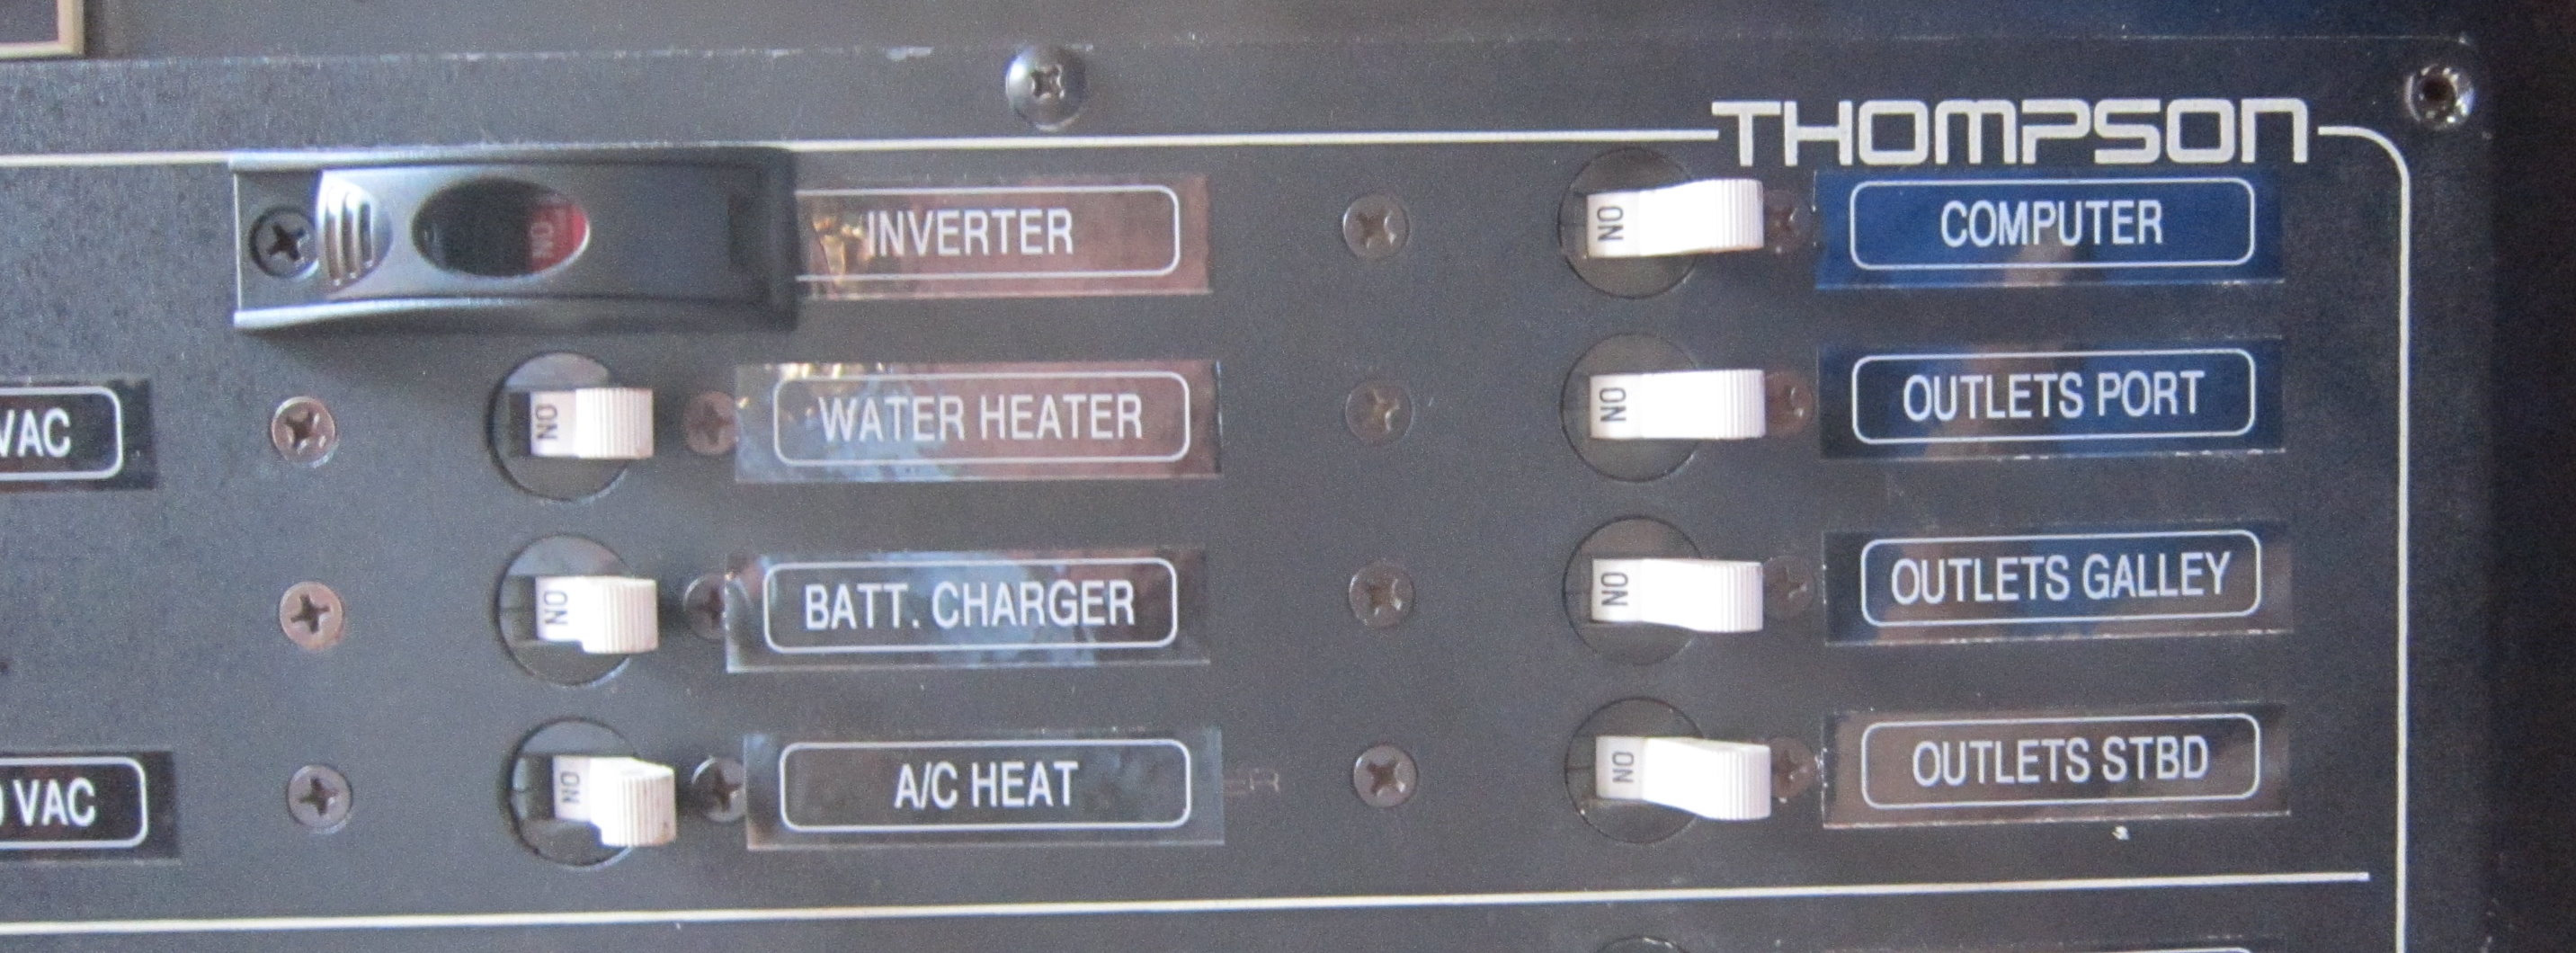 Understanding Inverter Installations Project Boat Zen Wiring Diagram Likewise Basic Electrical Systems Img 2282crop